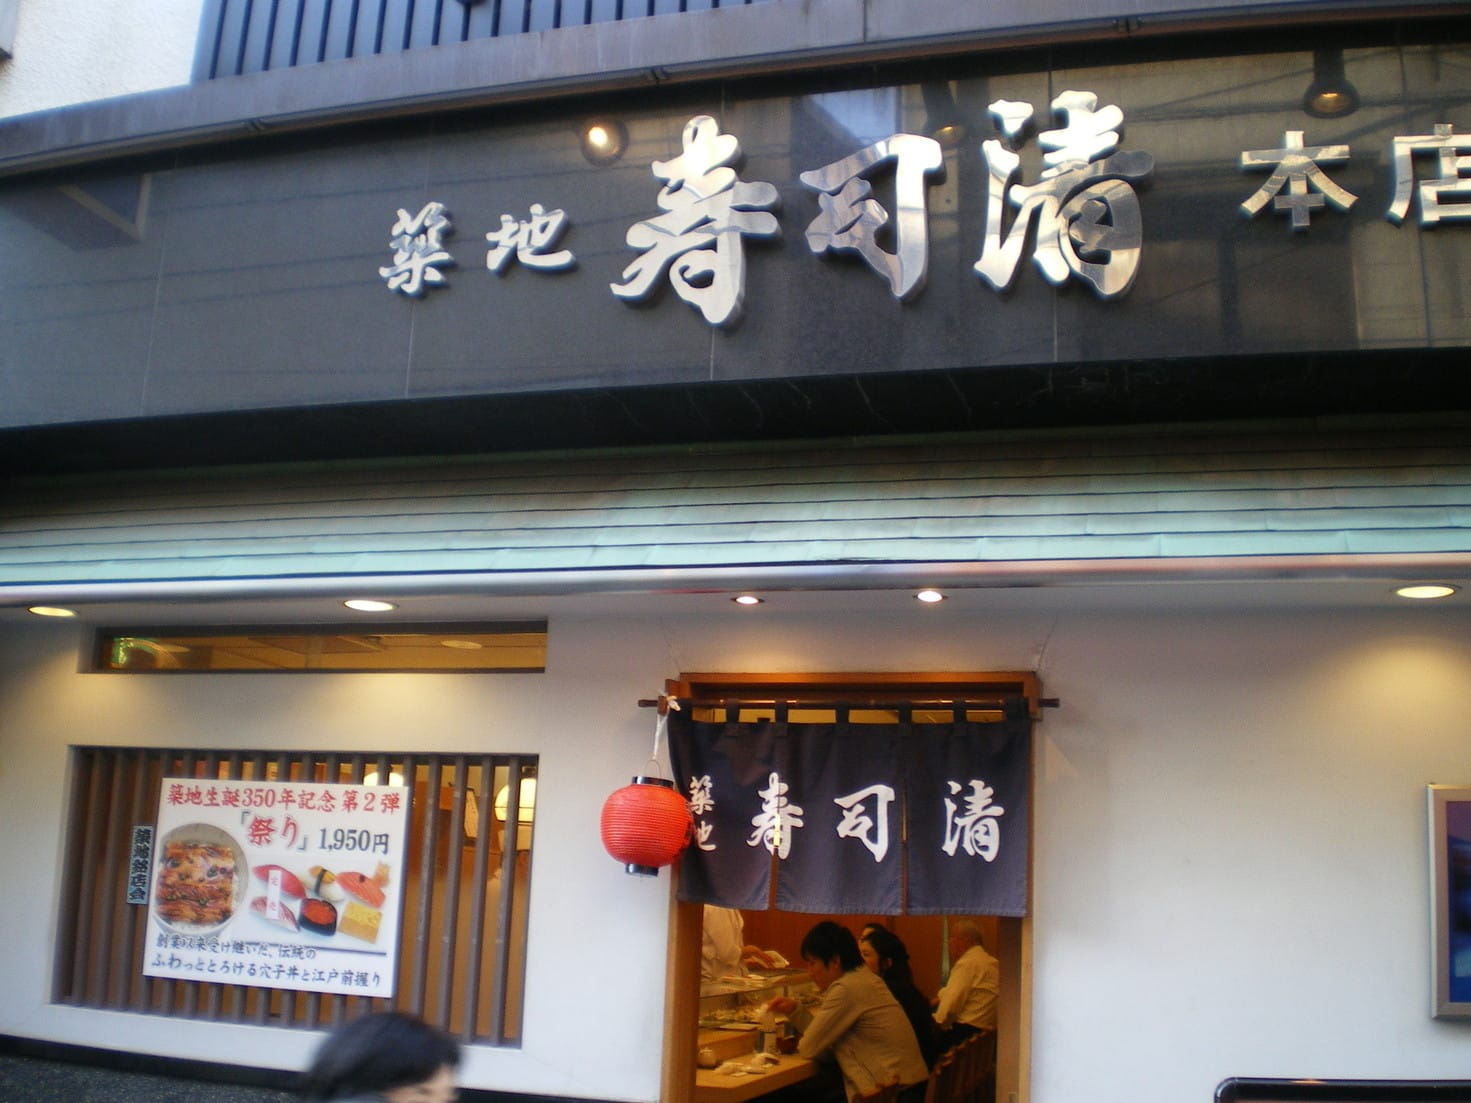 Enjoy a long-established store's sense of security and skill! Tsukiji Sushi Sei Tsukiji head office